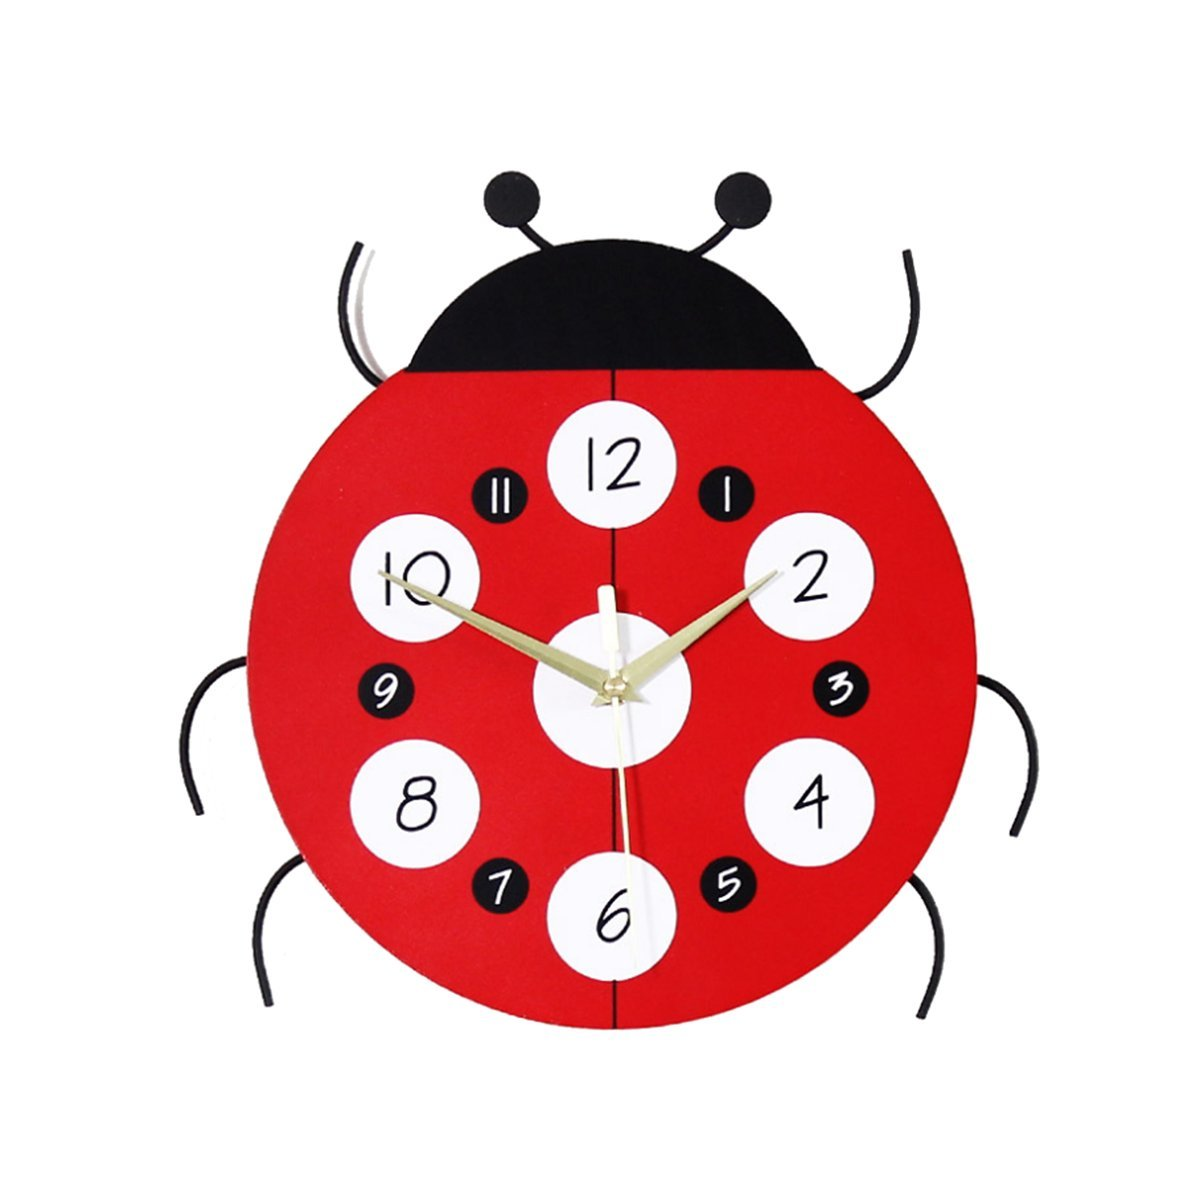 Cute Cartoon Insect Home Decor Analog Quartz Wood Wall Clock for Kids Bedroom-12 Inch Enjoy Best Time